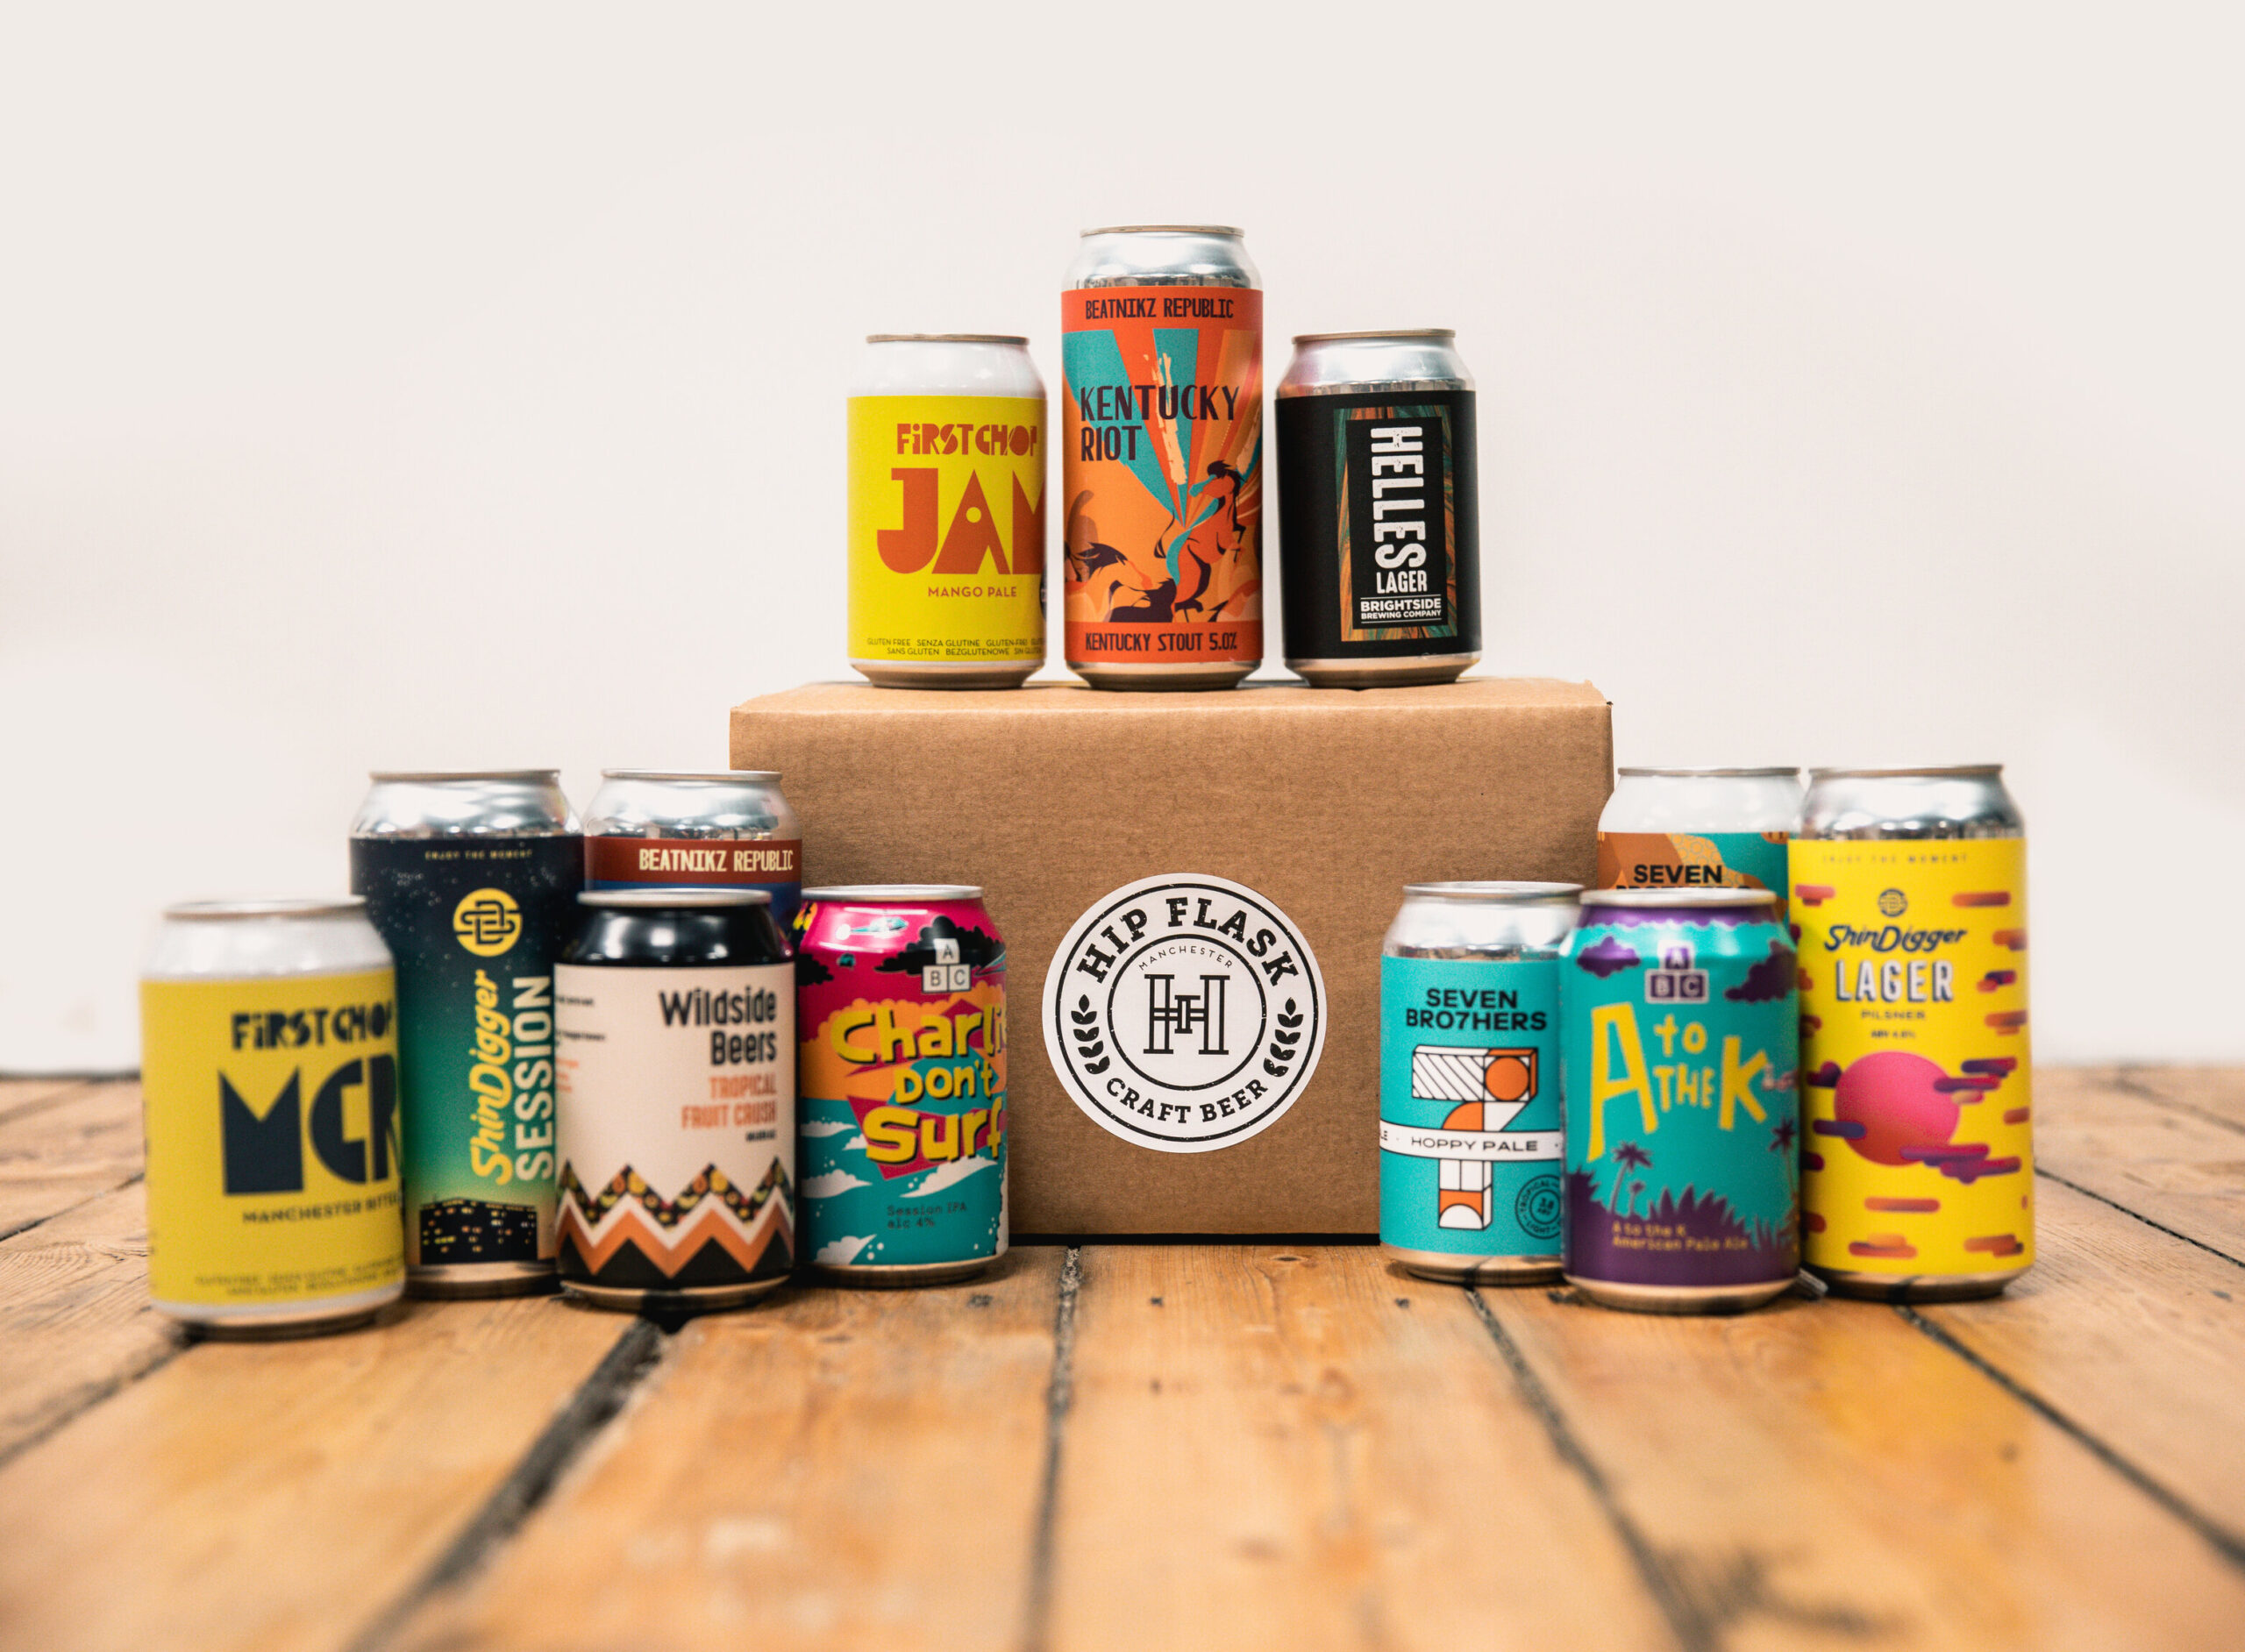 Hip Flask: The craft beer delivery company with a 'Manchester Box' at its heart, The Manc